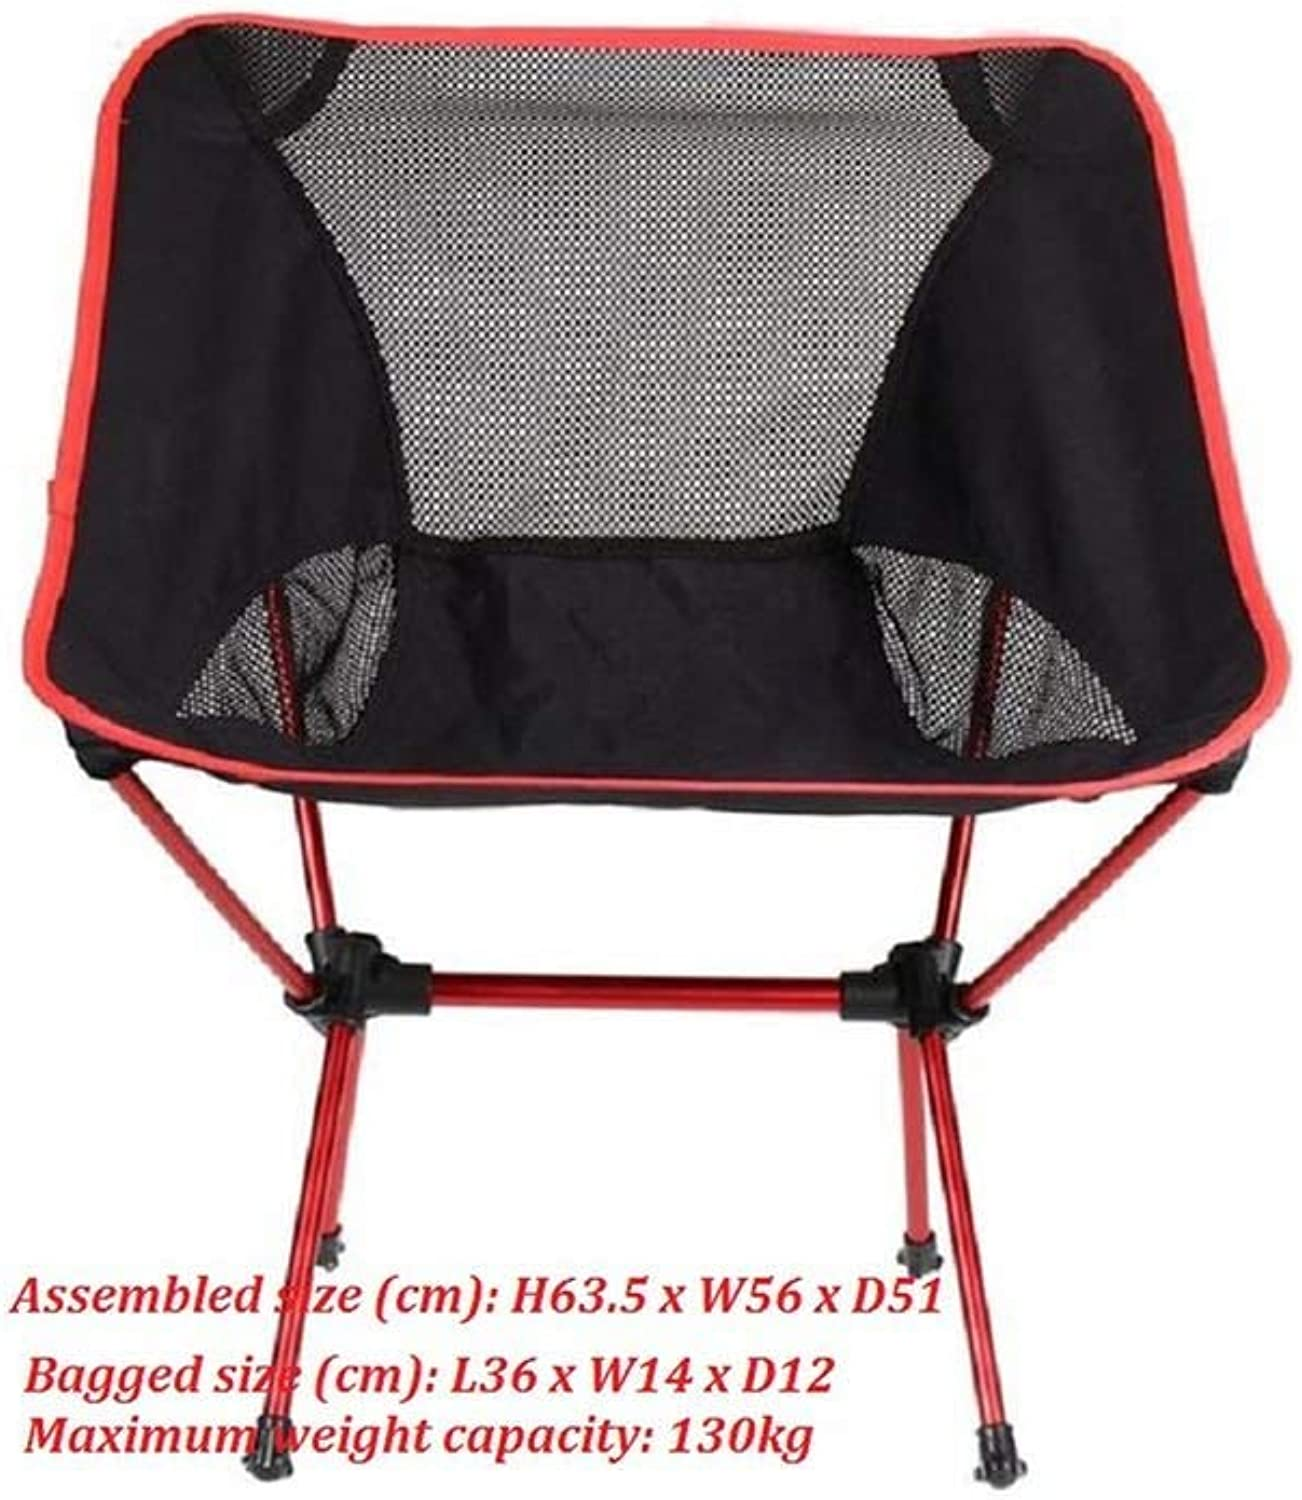 Outdoor Chairsportable Folding Fishing Chair Camping Chair Seat 600D Oxford Cloth Aluminium Fishing Chair for Outdoor Picnic BBQ Beach Chair